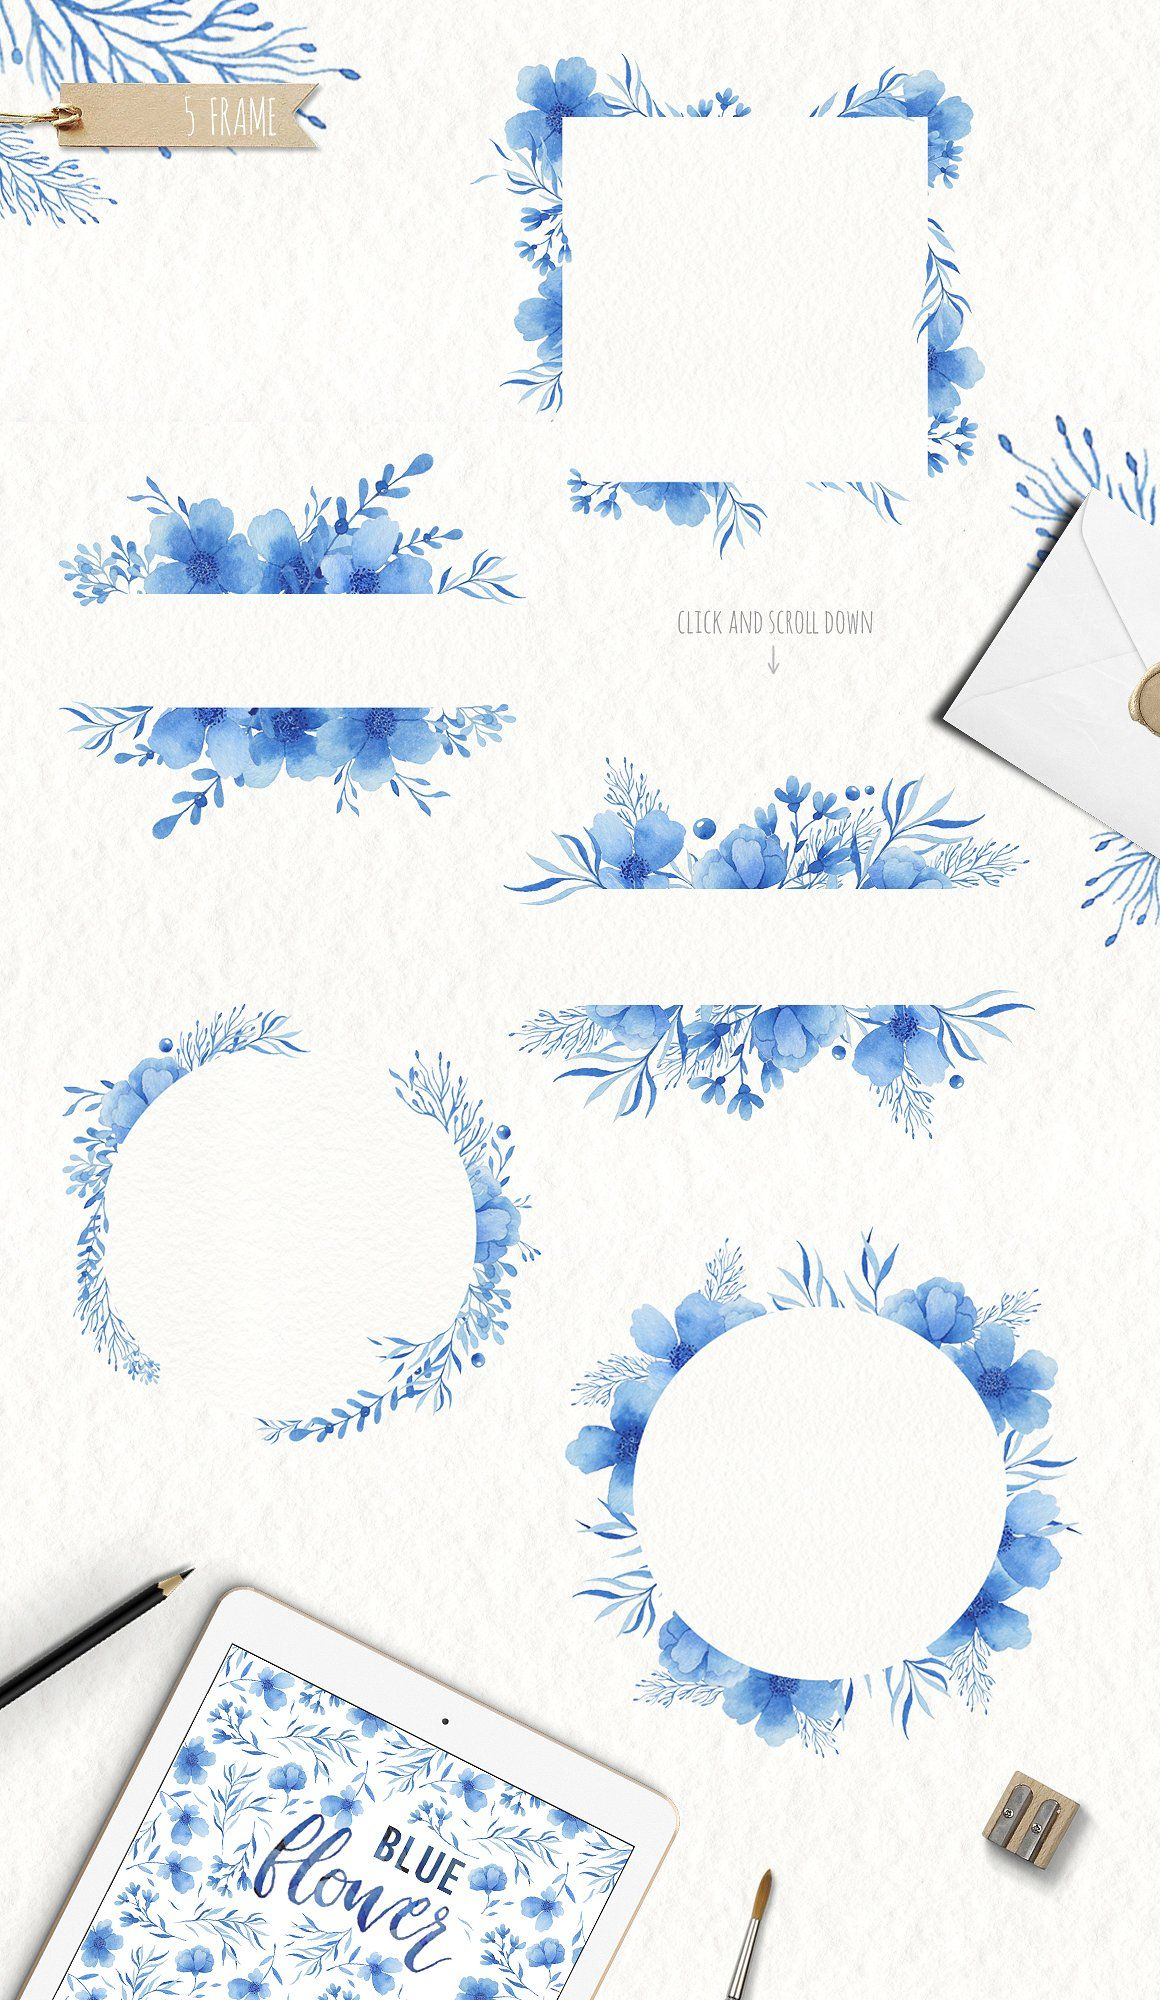 Watercolor blue flower clipart  by Arina Ulyasheva on @creativemarket #blueflowerwallpaper